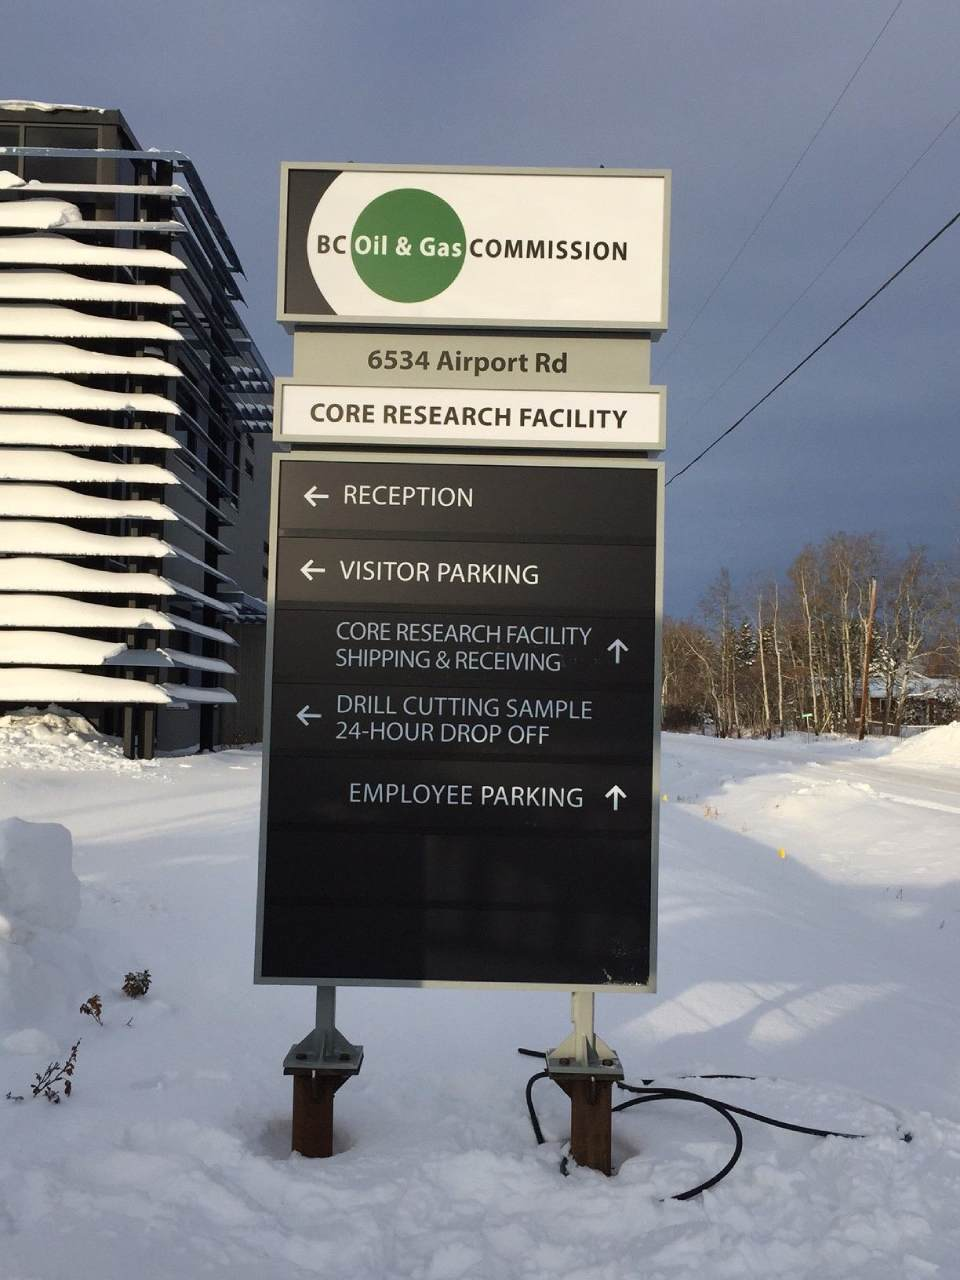 BC Oil & gas commission signage